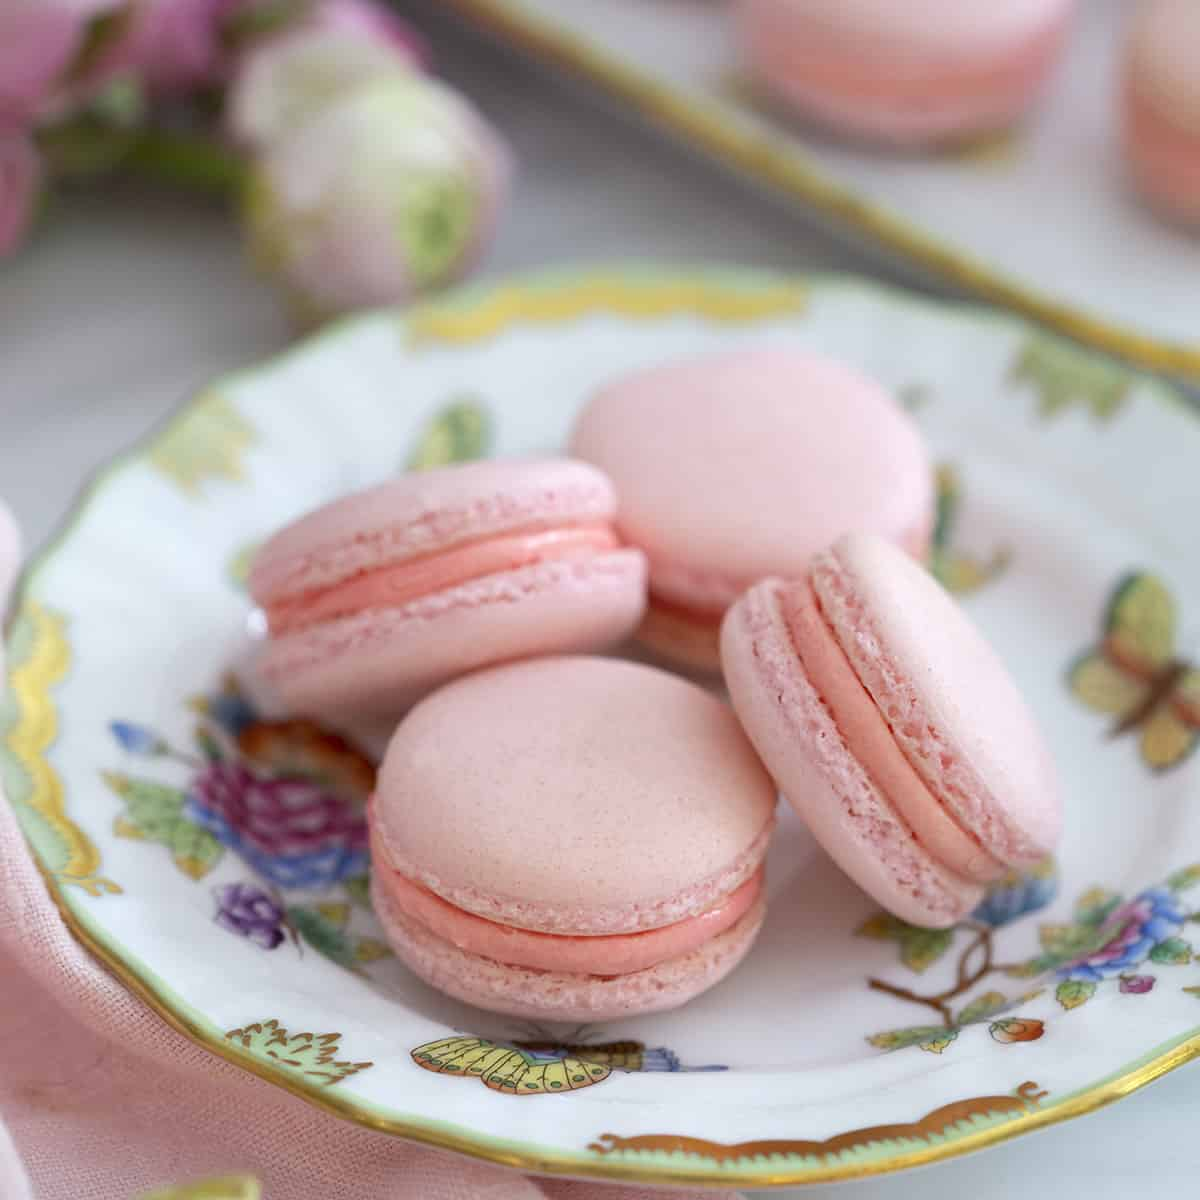 four macarons on a porcelain plate